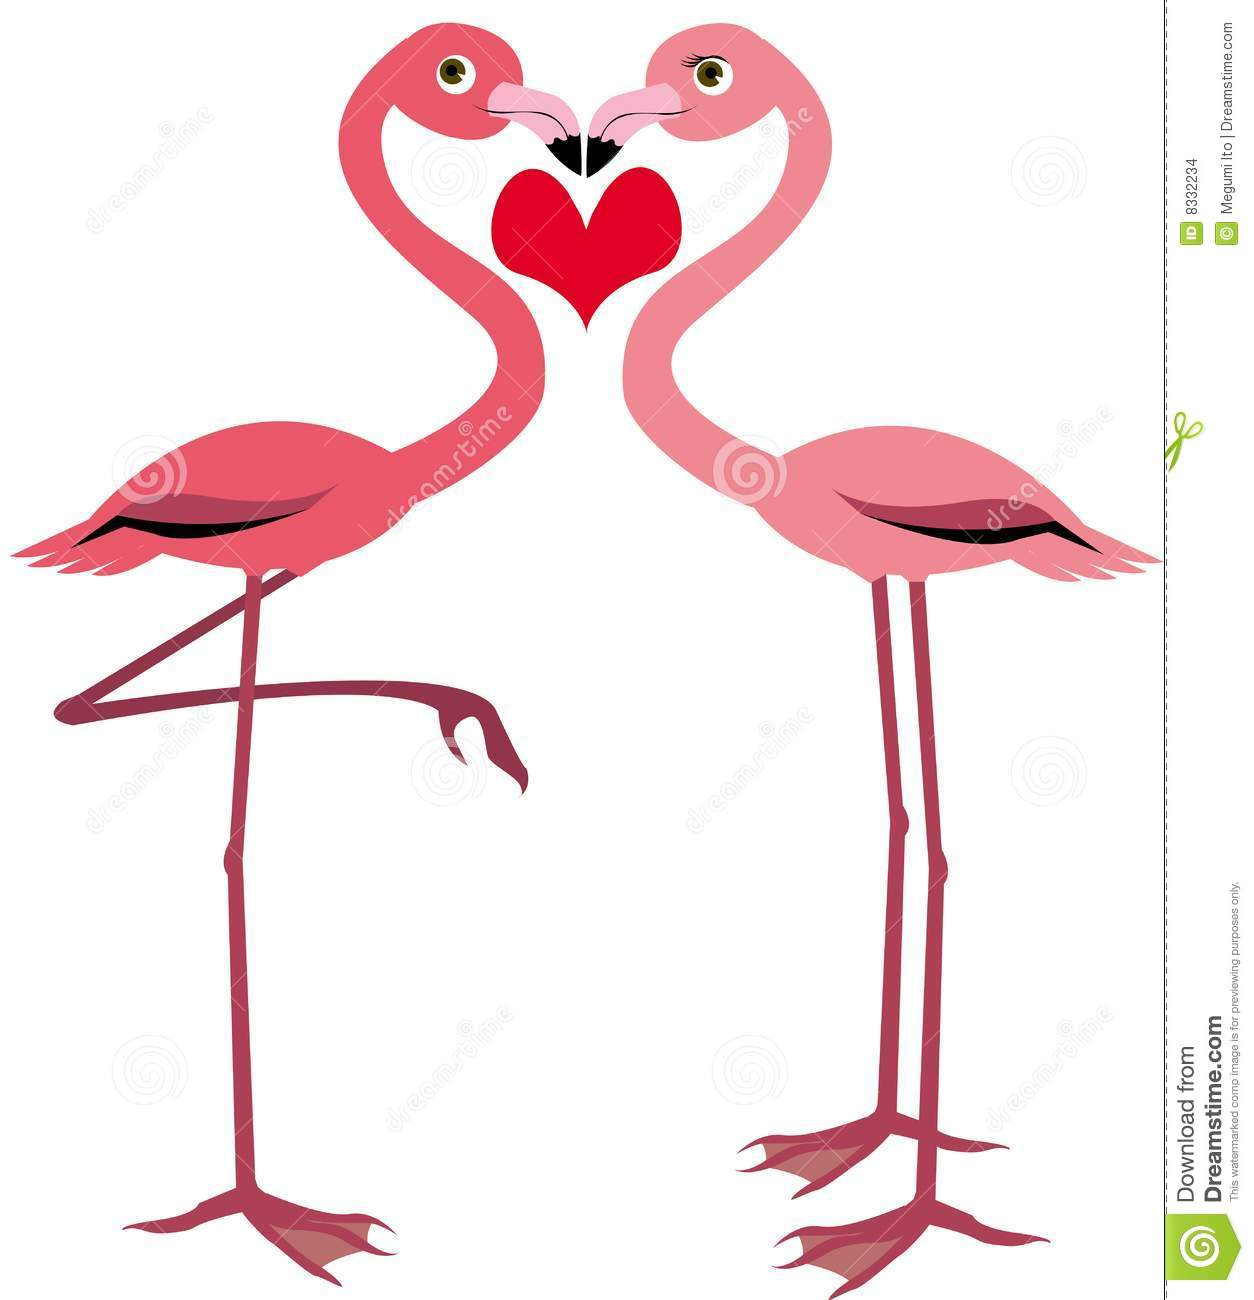 Cute Flamingo Stock Images - Image: 8332234